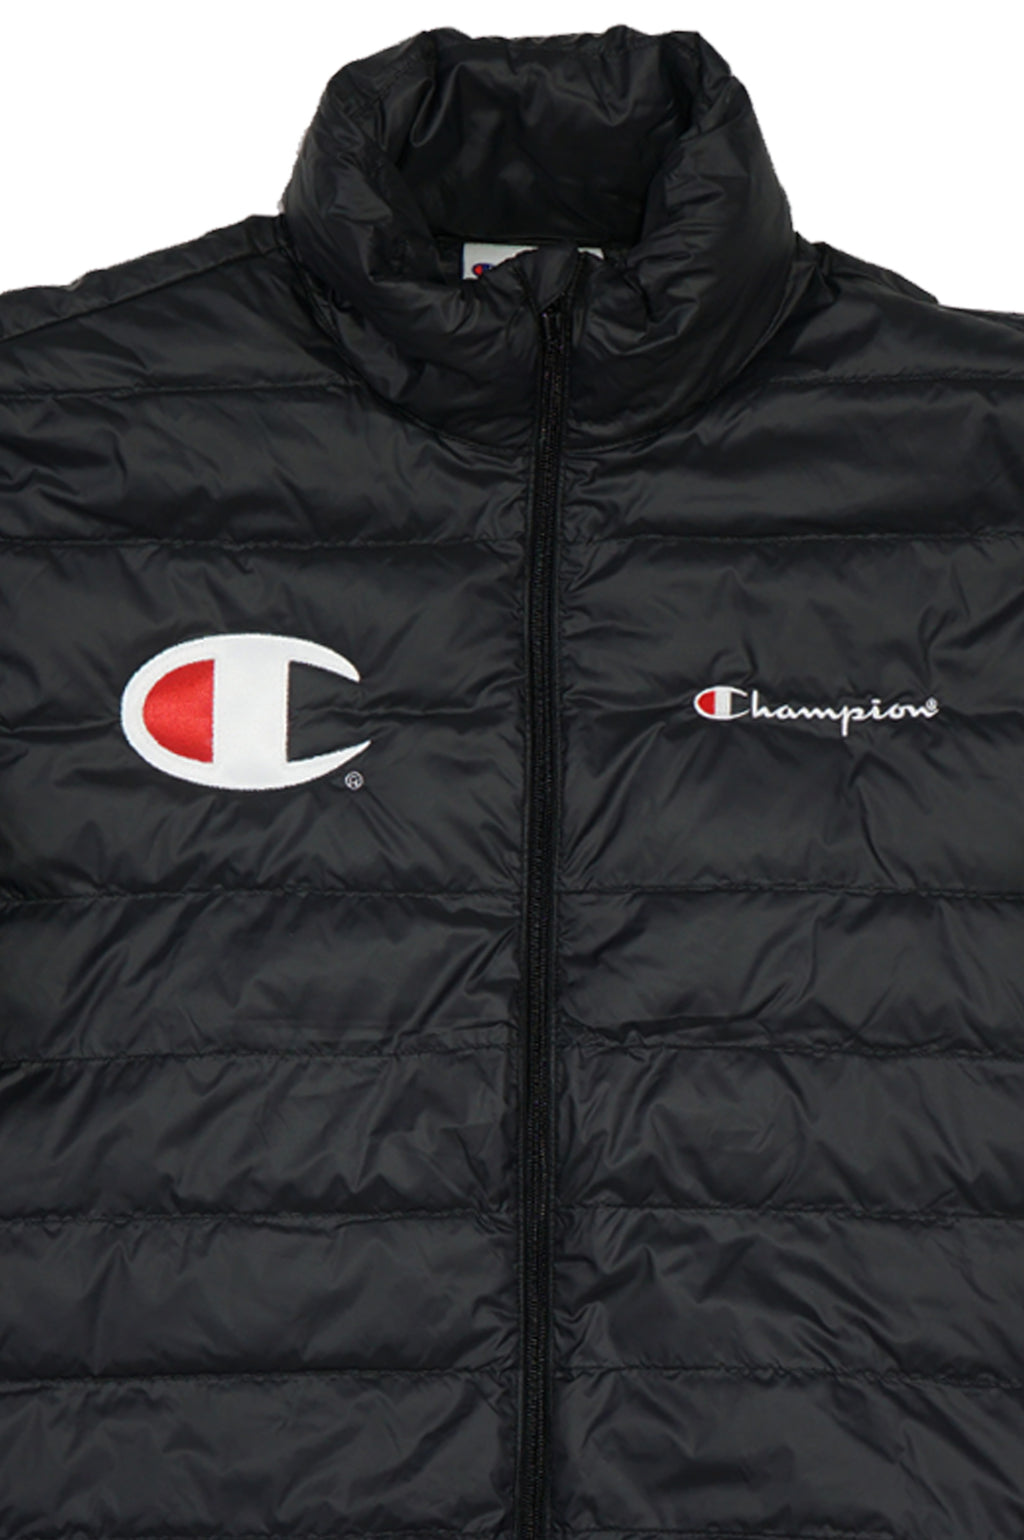 CHAMPION MENS POLAR JACKET